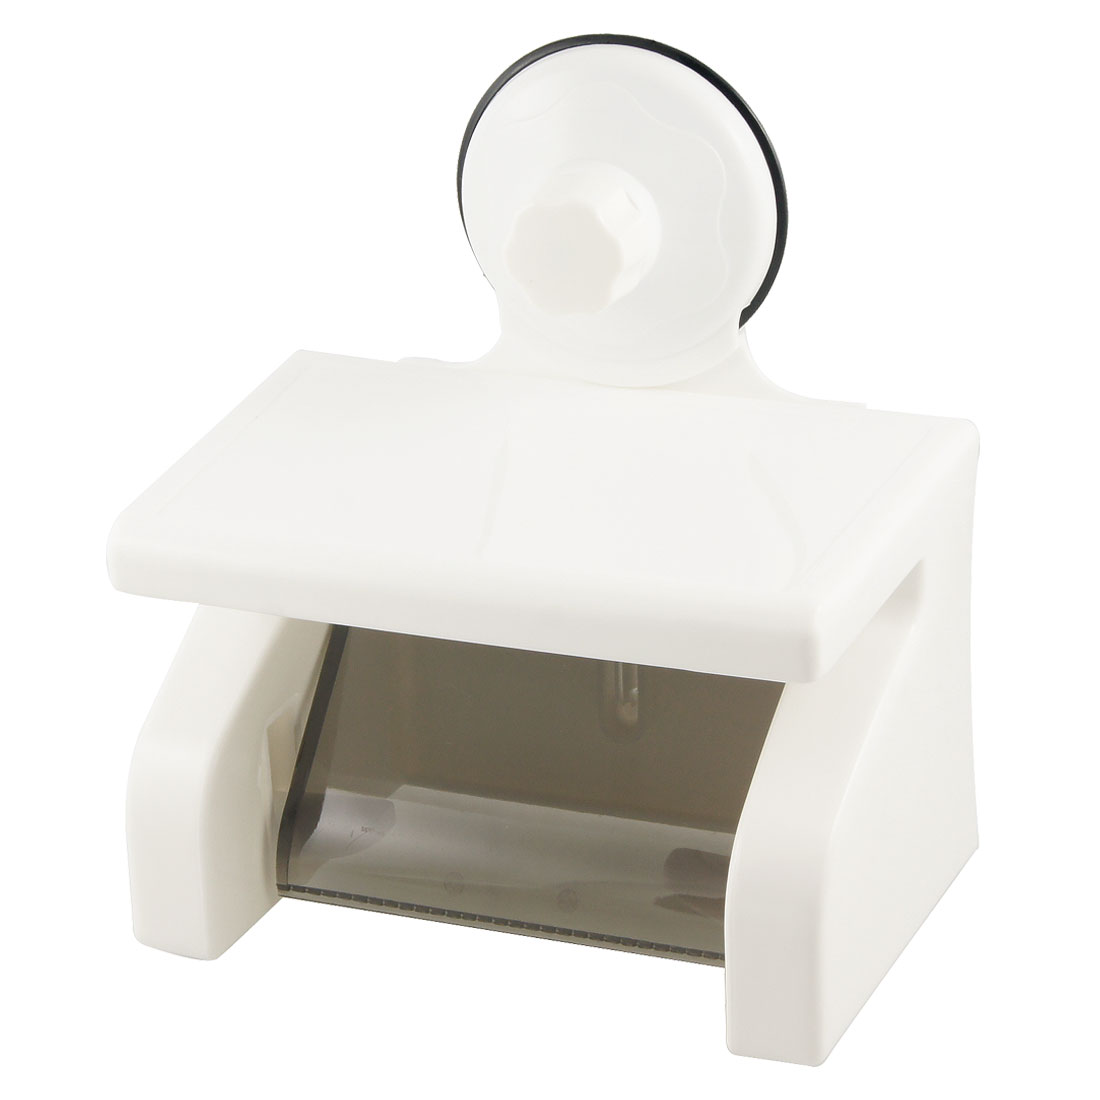 Suction Cup 0ff White Plastic Toilet Paper Tissue Holder Bracket